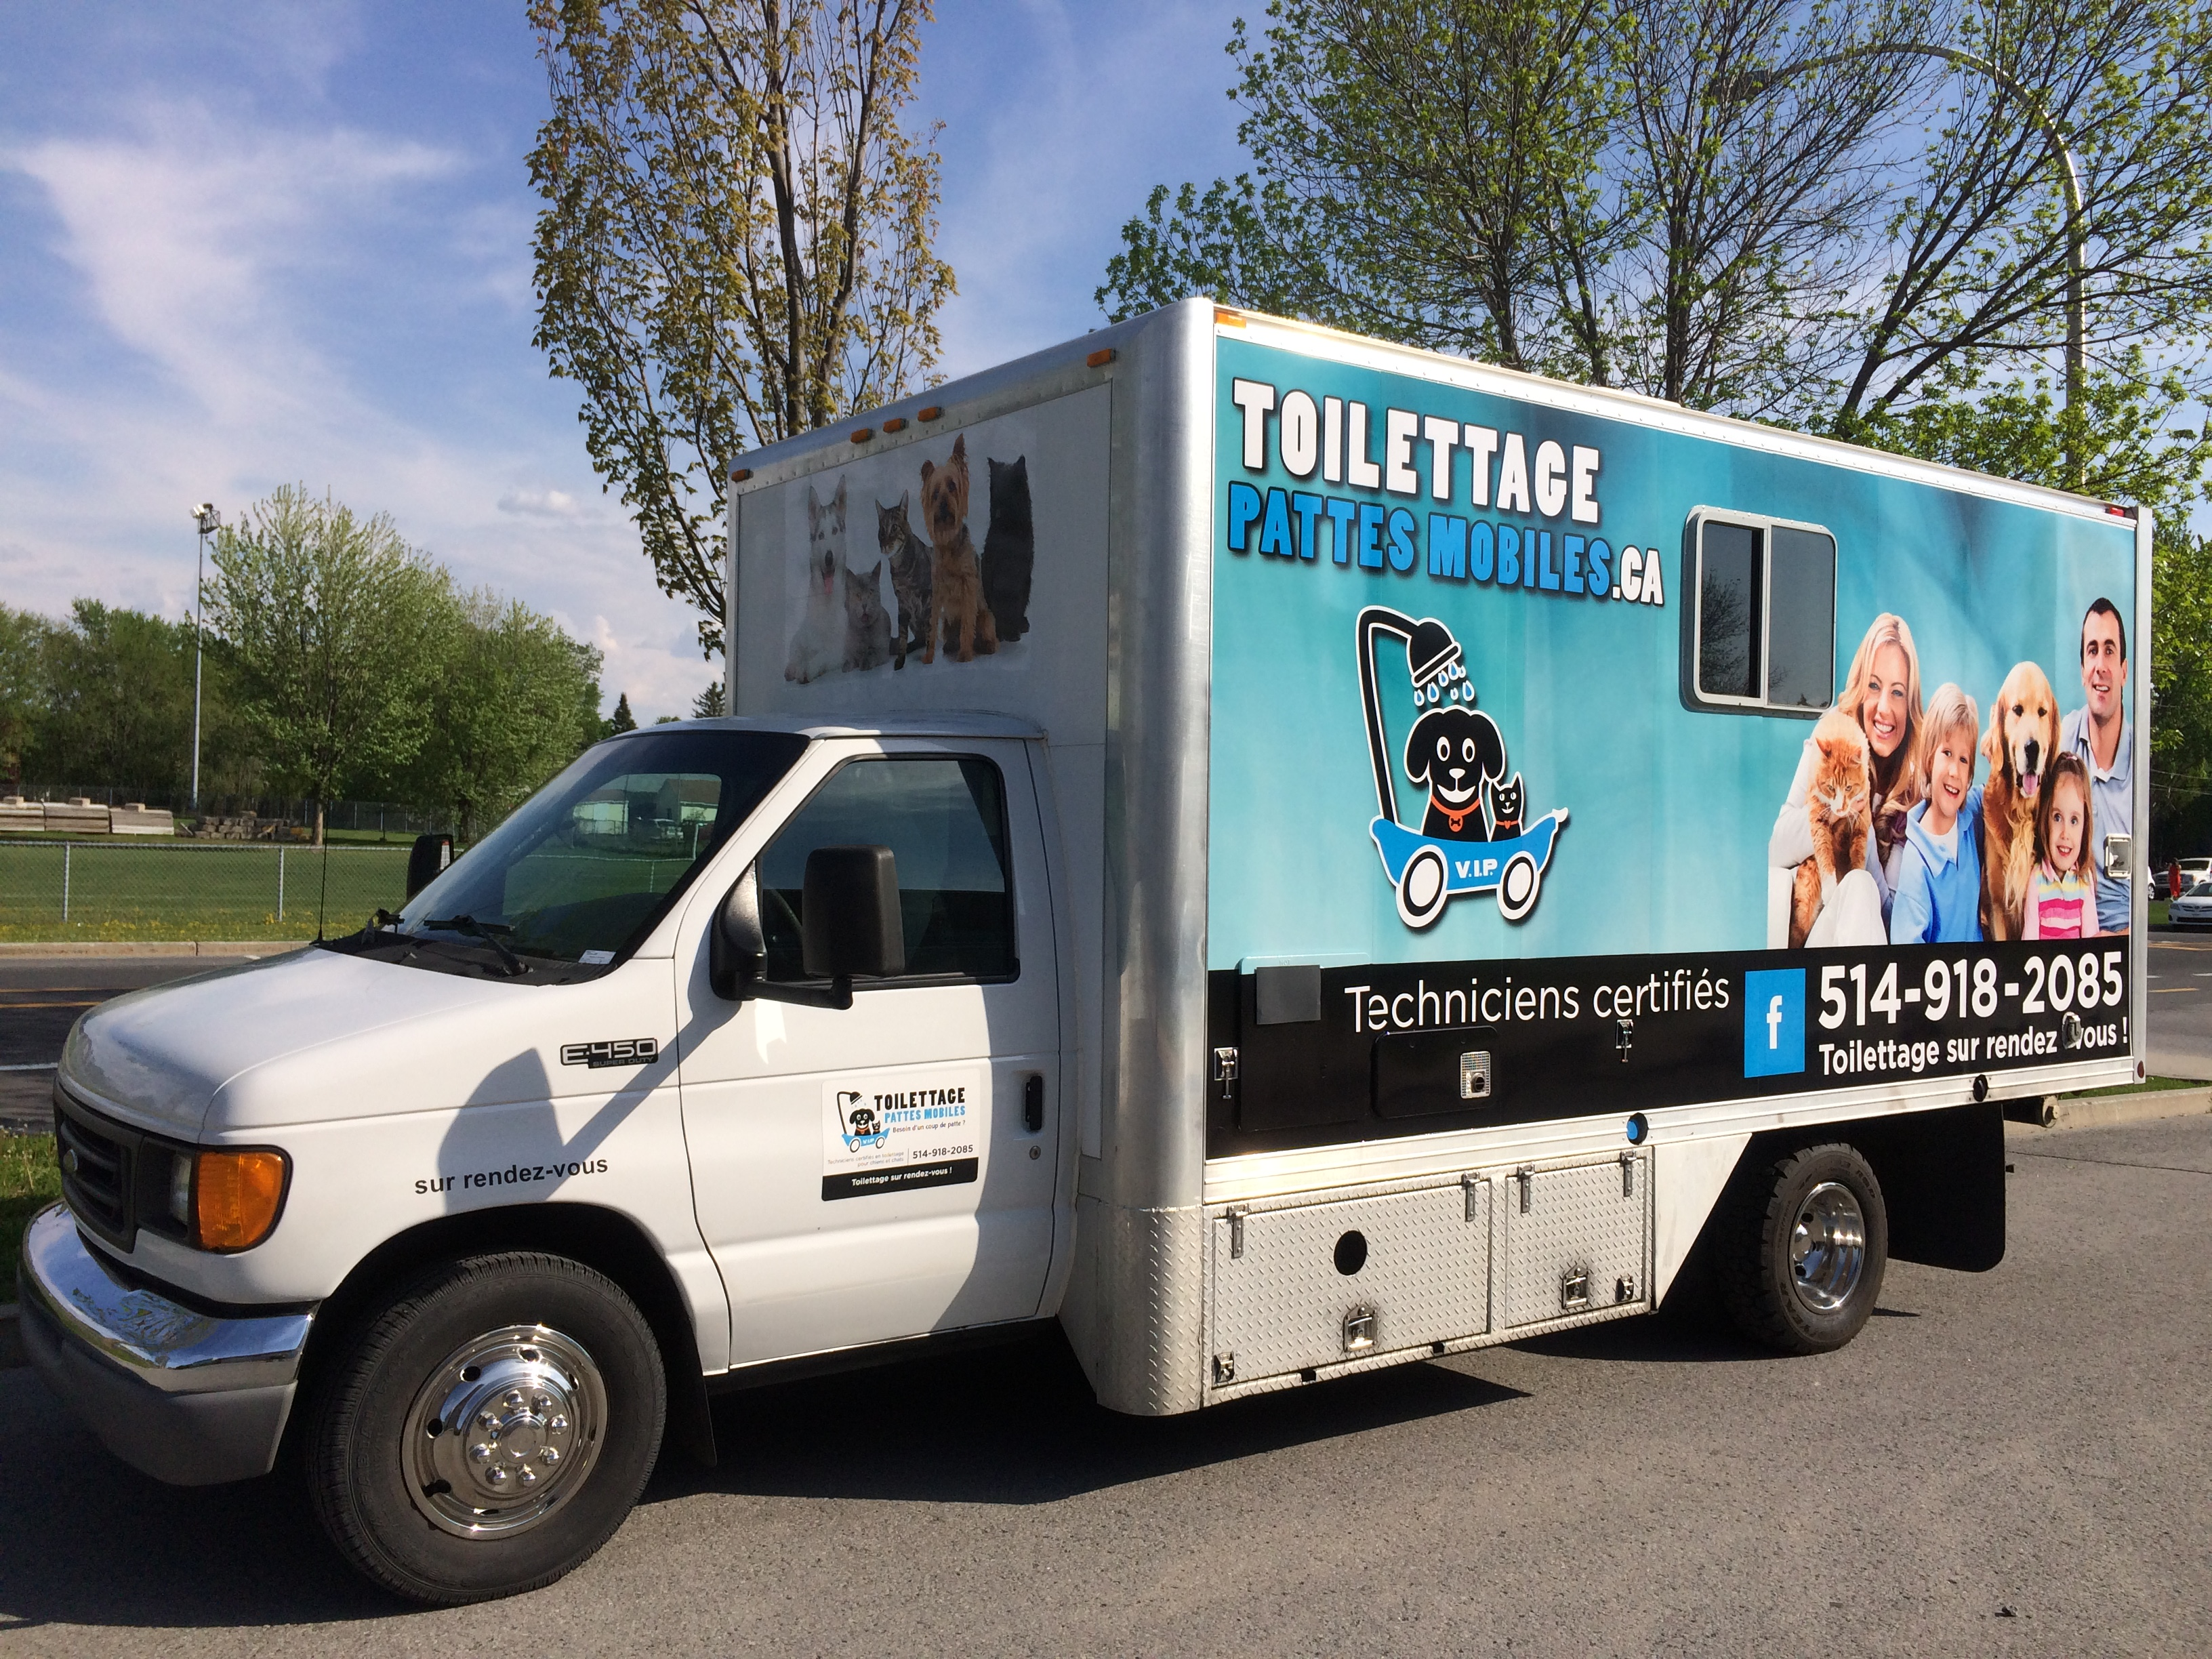 Salon Canin 2016 Camion Toilettage Chiens And Chats Toilettage Pattes Mobiles